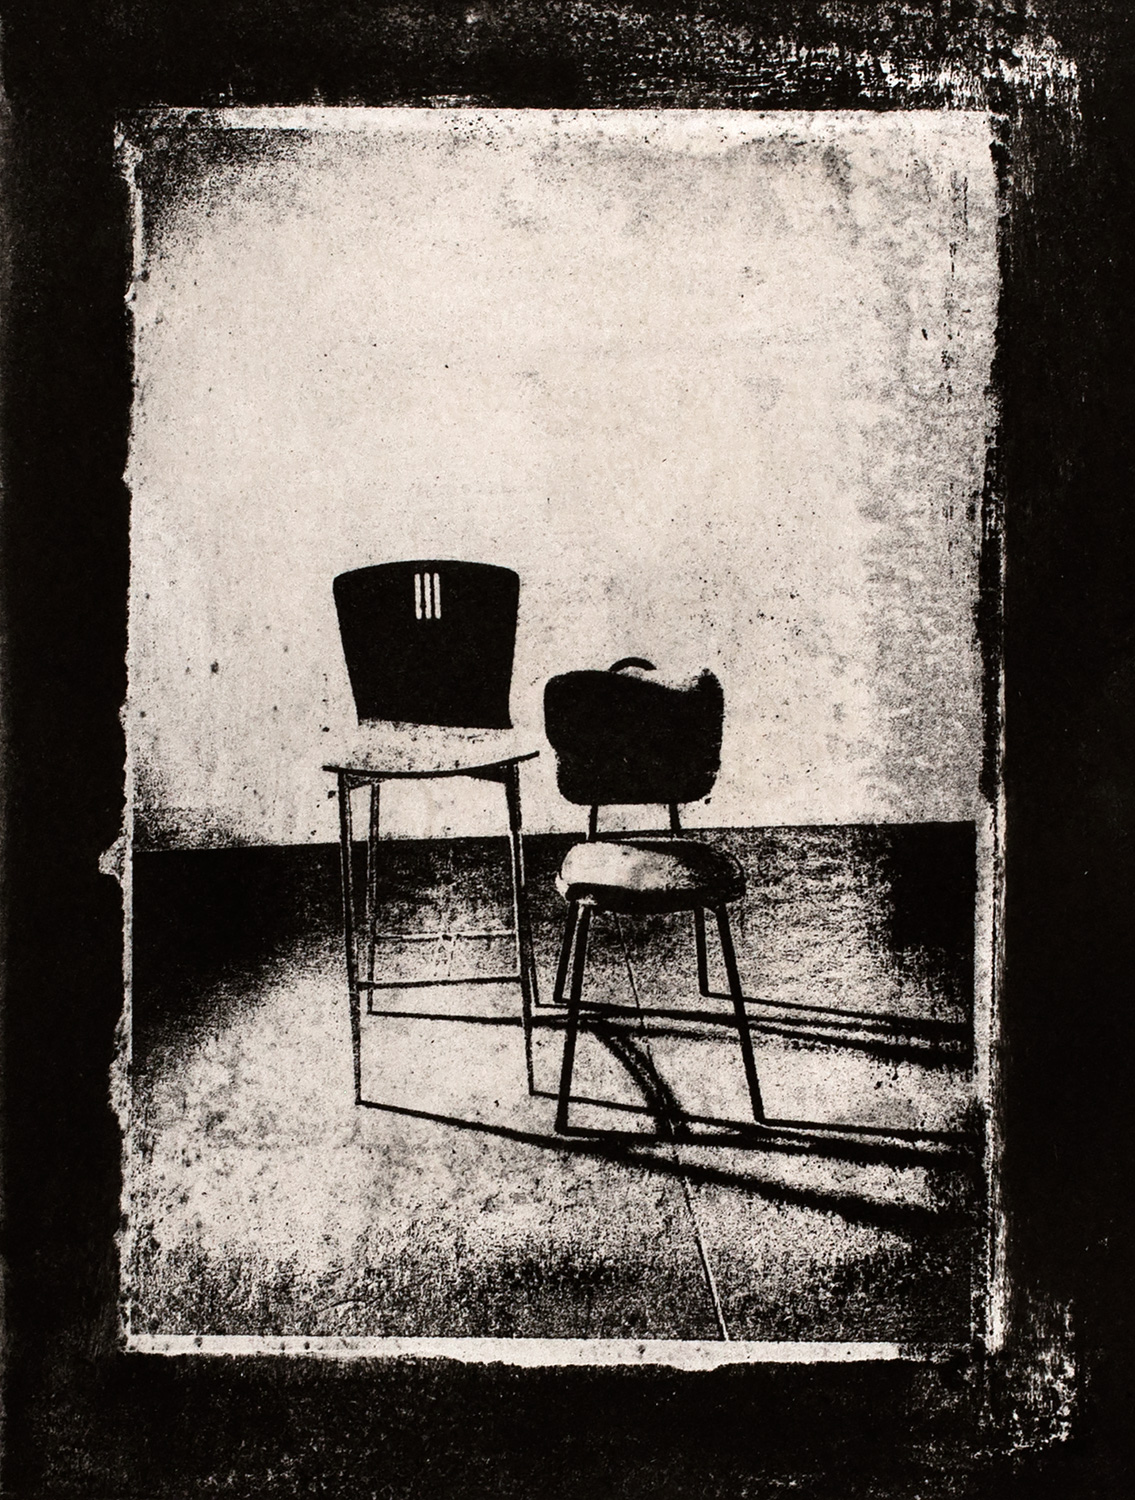 Chairs VII , 2016, paper lithograph on Fabriano Artistico 300 gsm, 42 x 29.7 cm